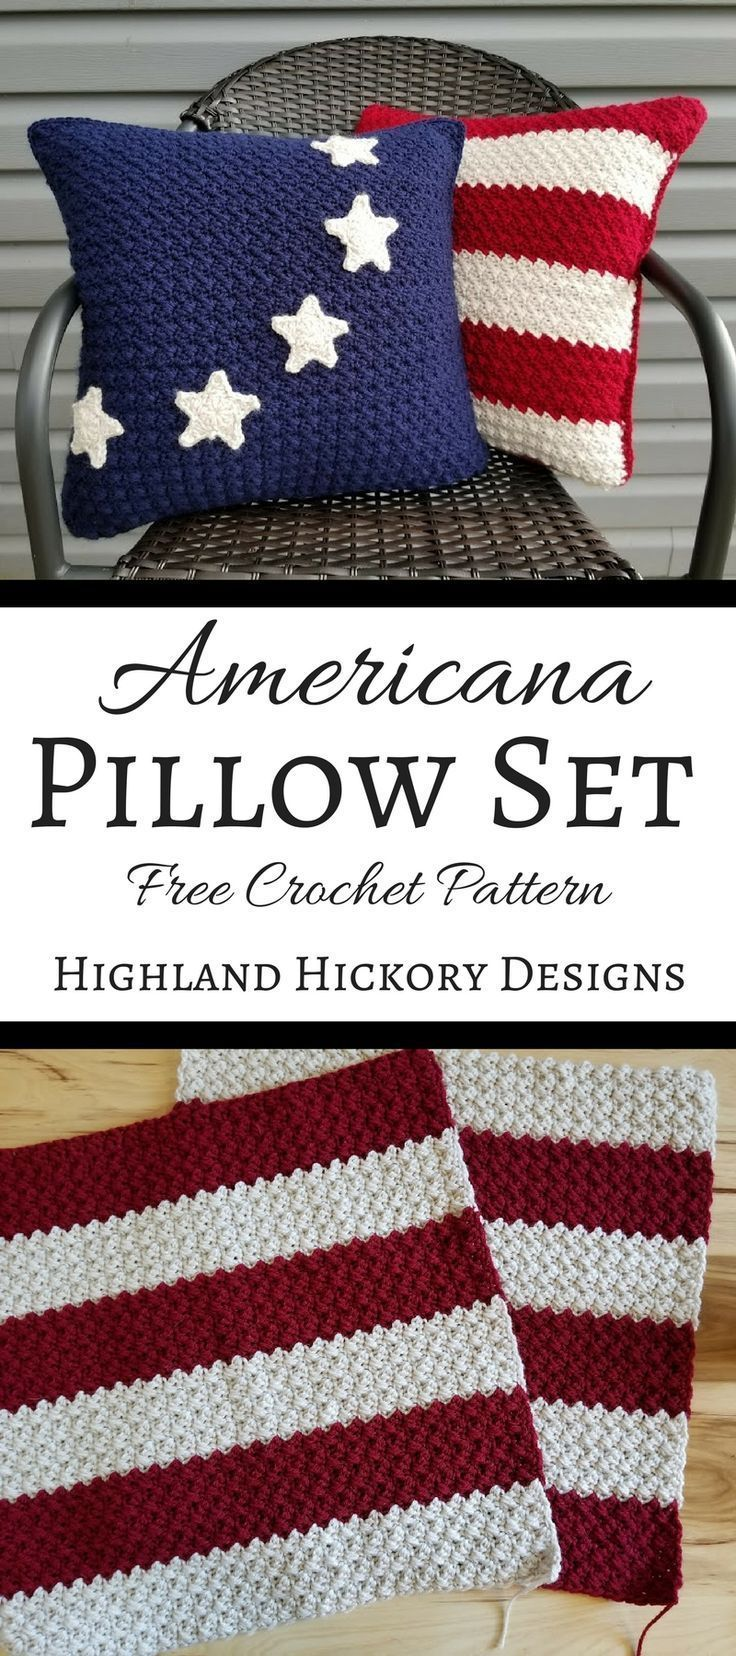 Americana Pillows Afghan Patterns Free Crochet And Afghans